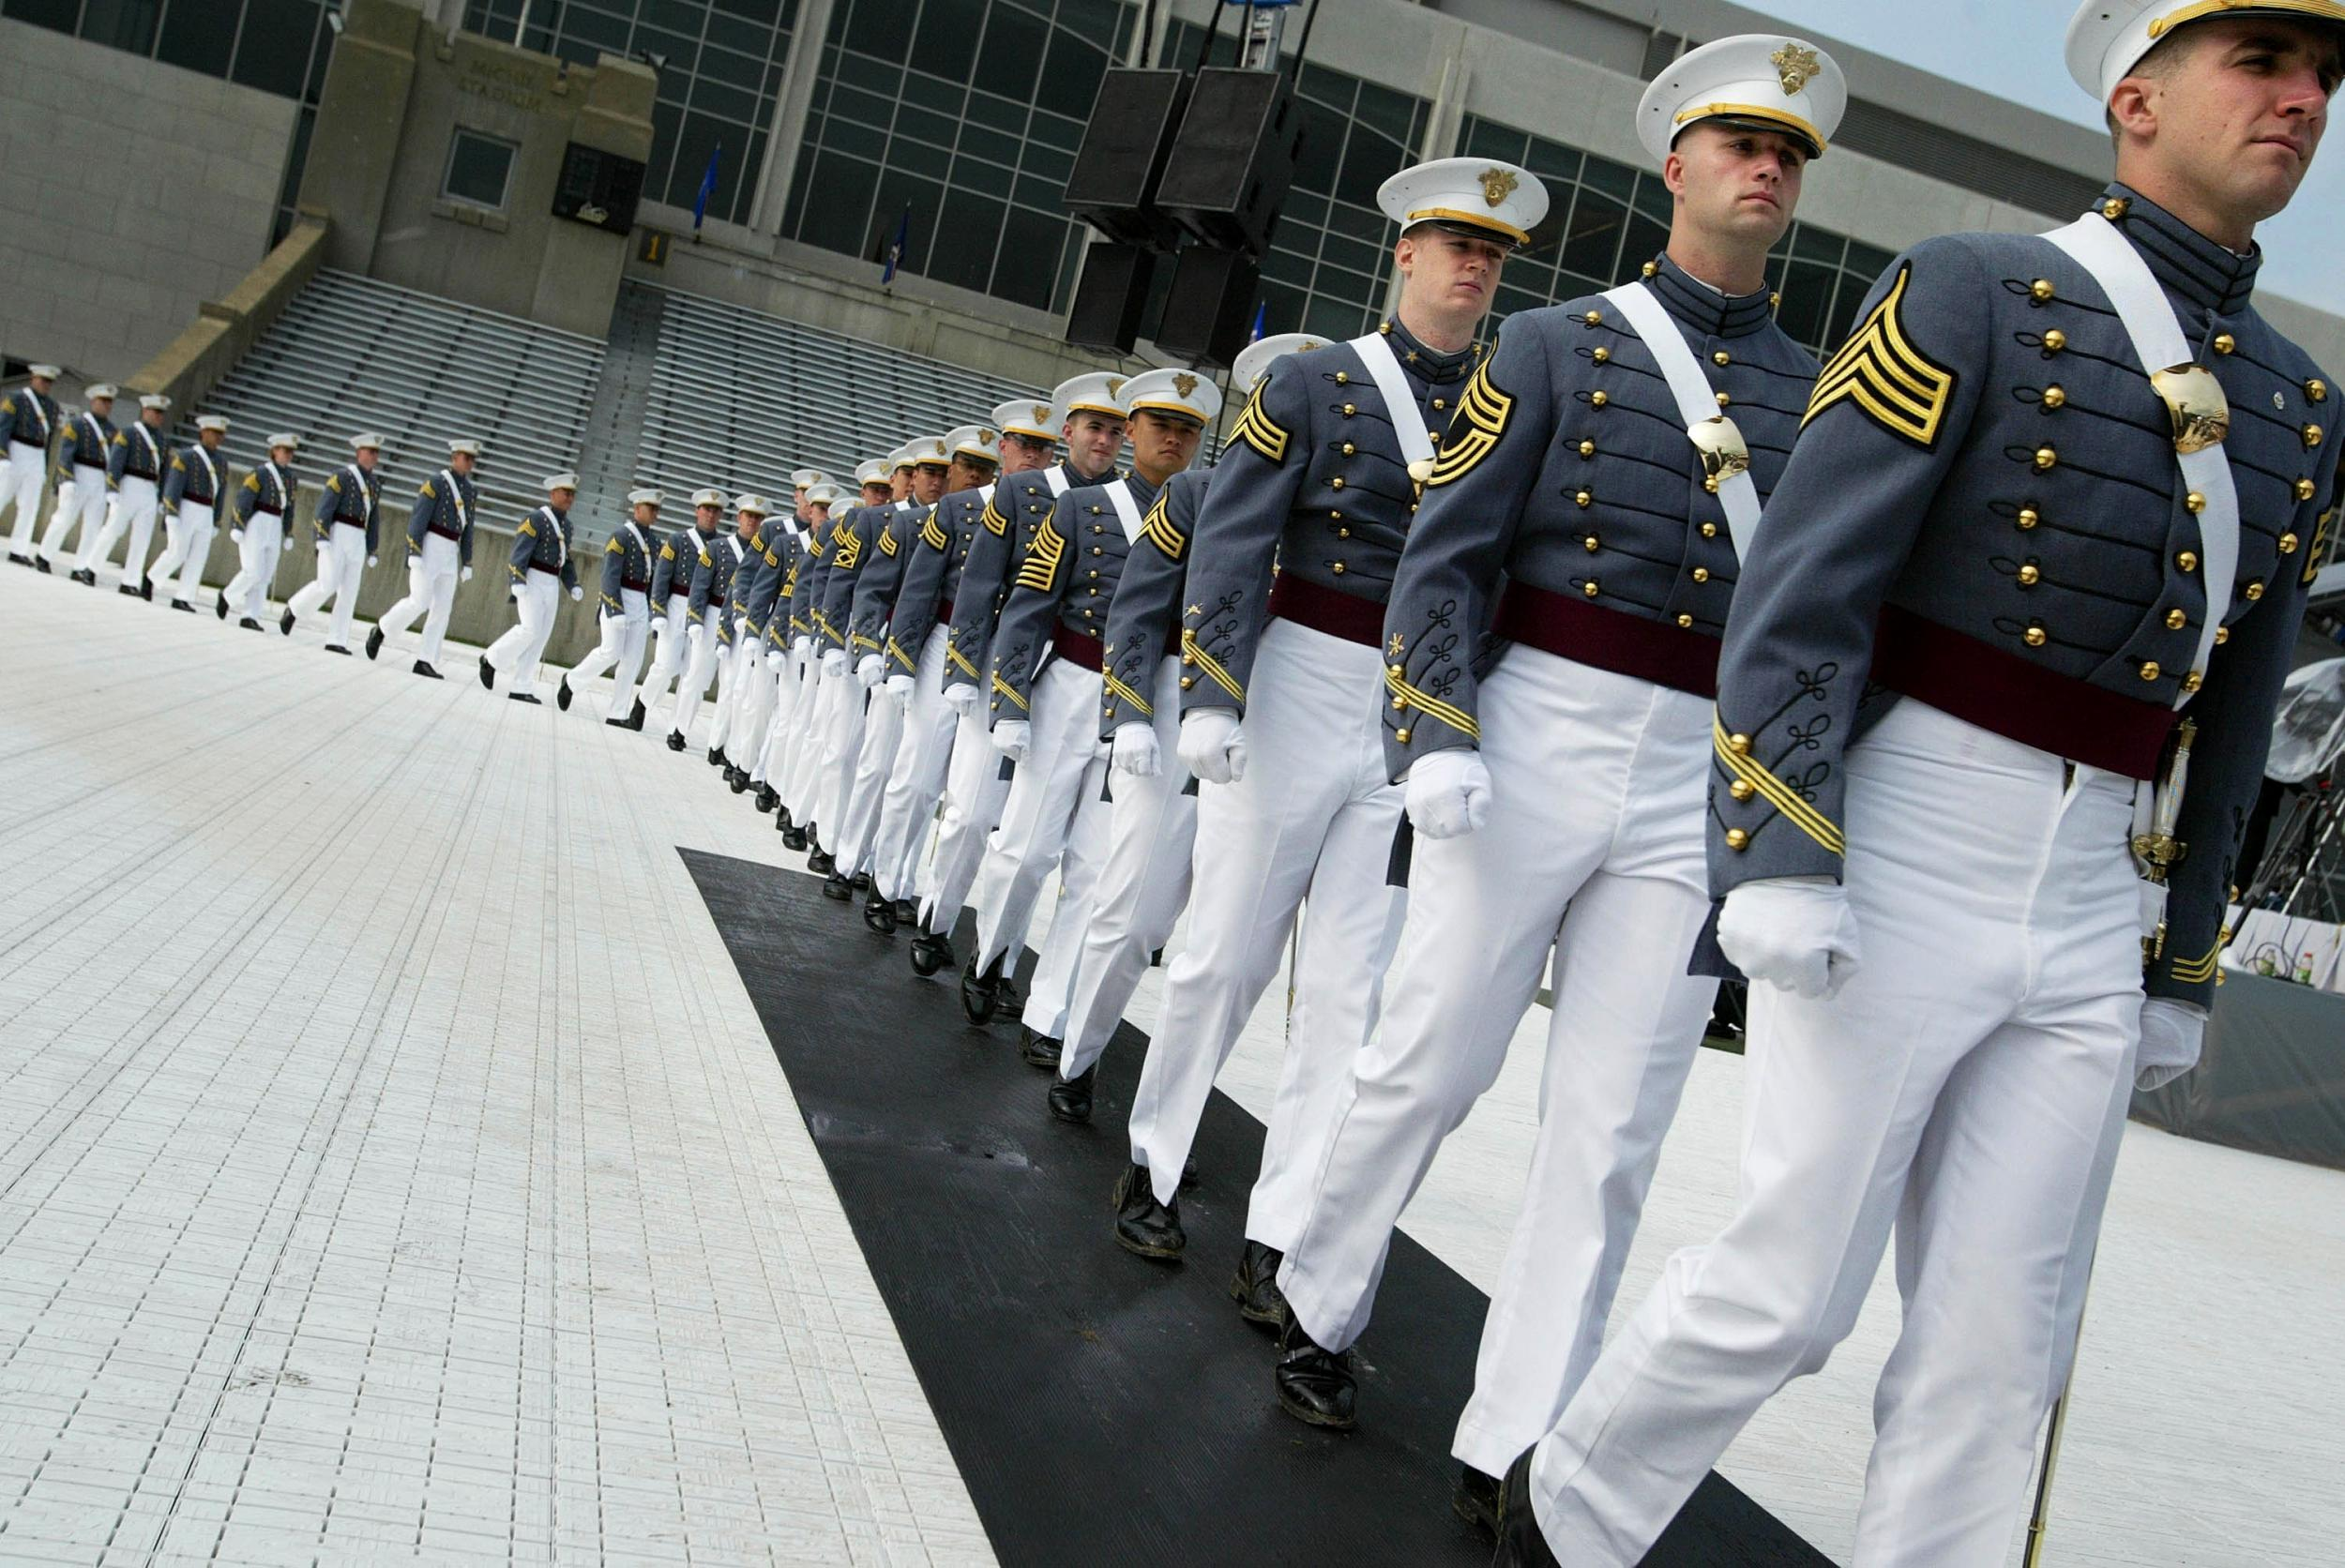 Trump to deliver West Point commencement address, forcing 1,000 cadets back to campus amid pandemic thumbnail